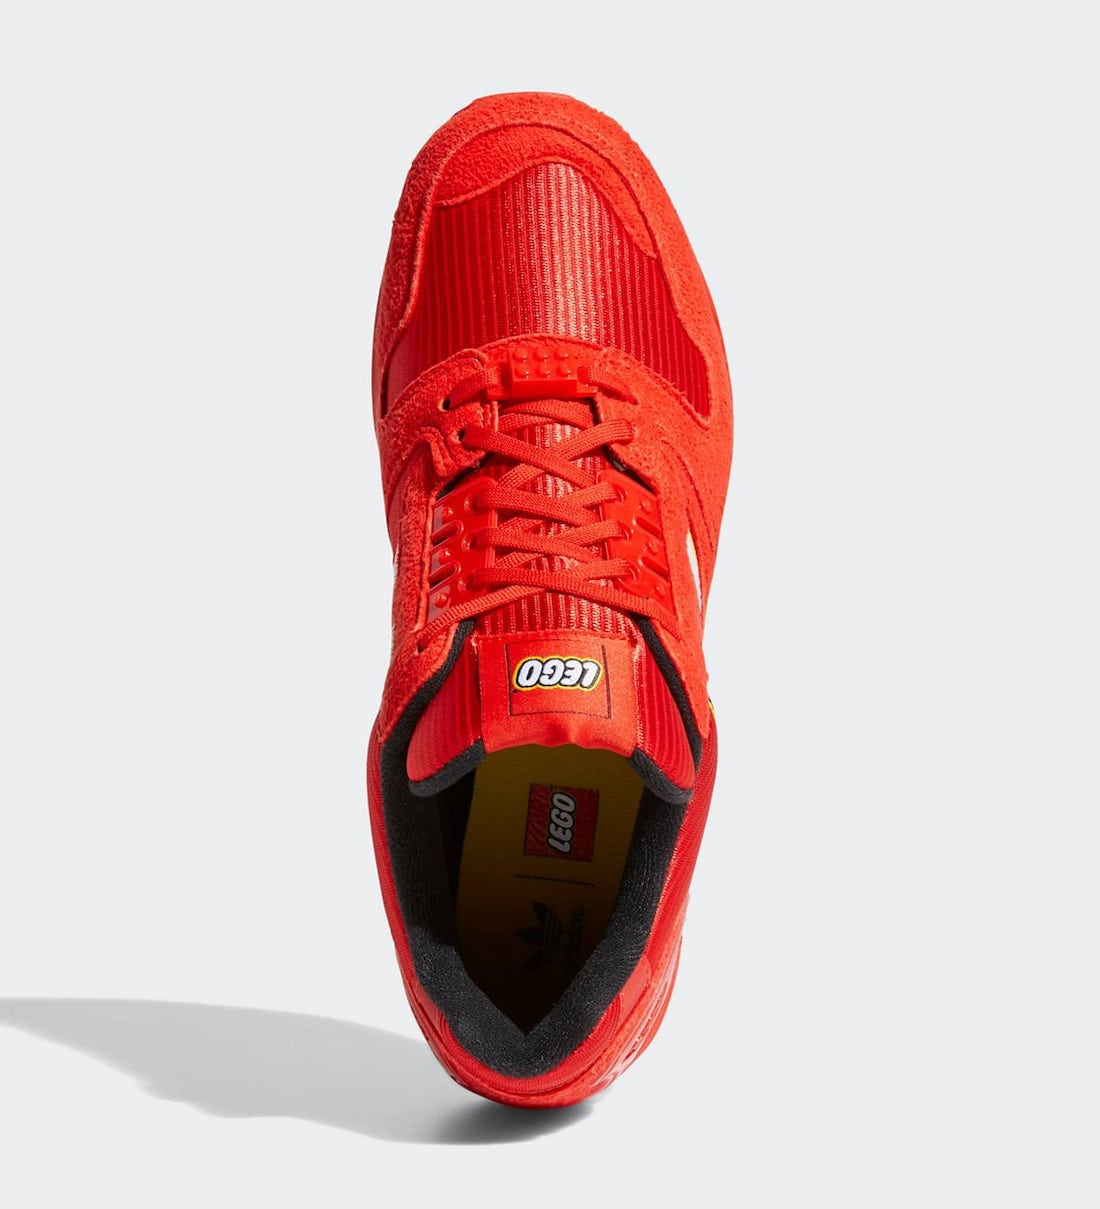 LEGO adidas ZX 8000 Red FY7084 Release Date Info